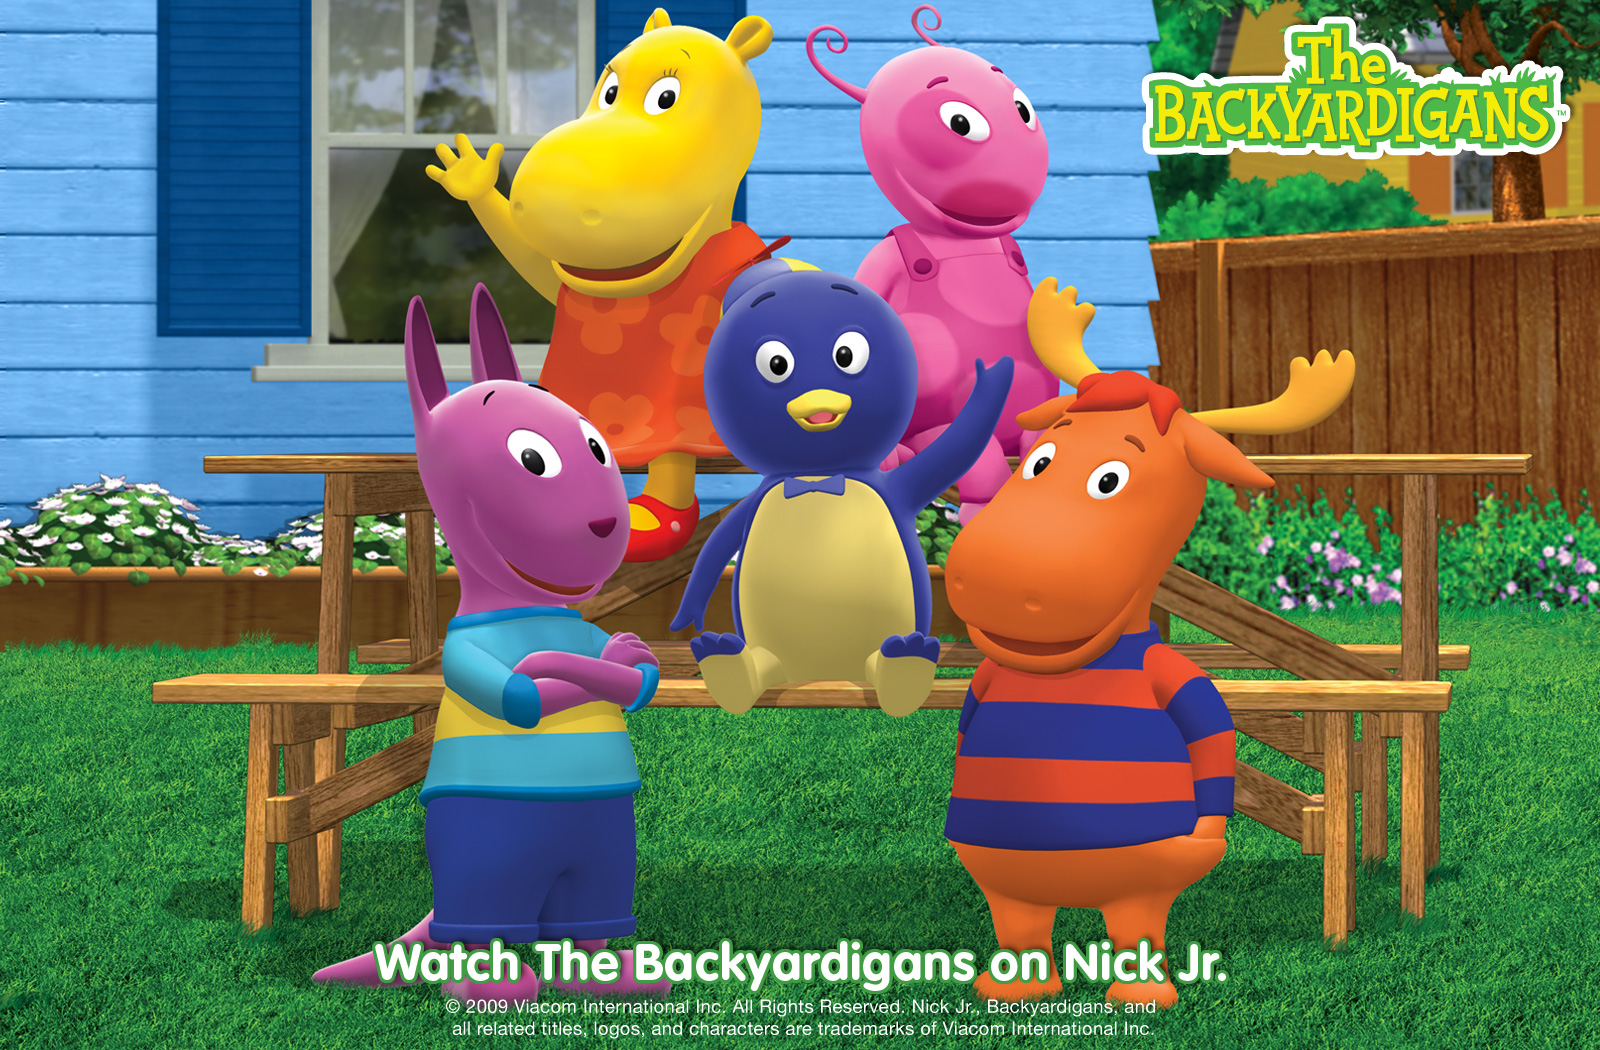 letra de canciones backyardigans: